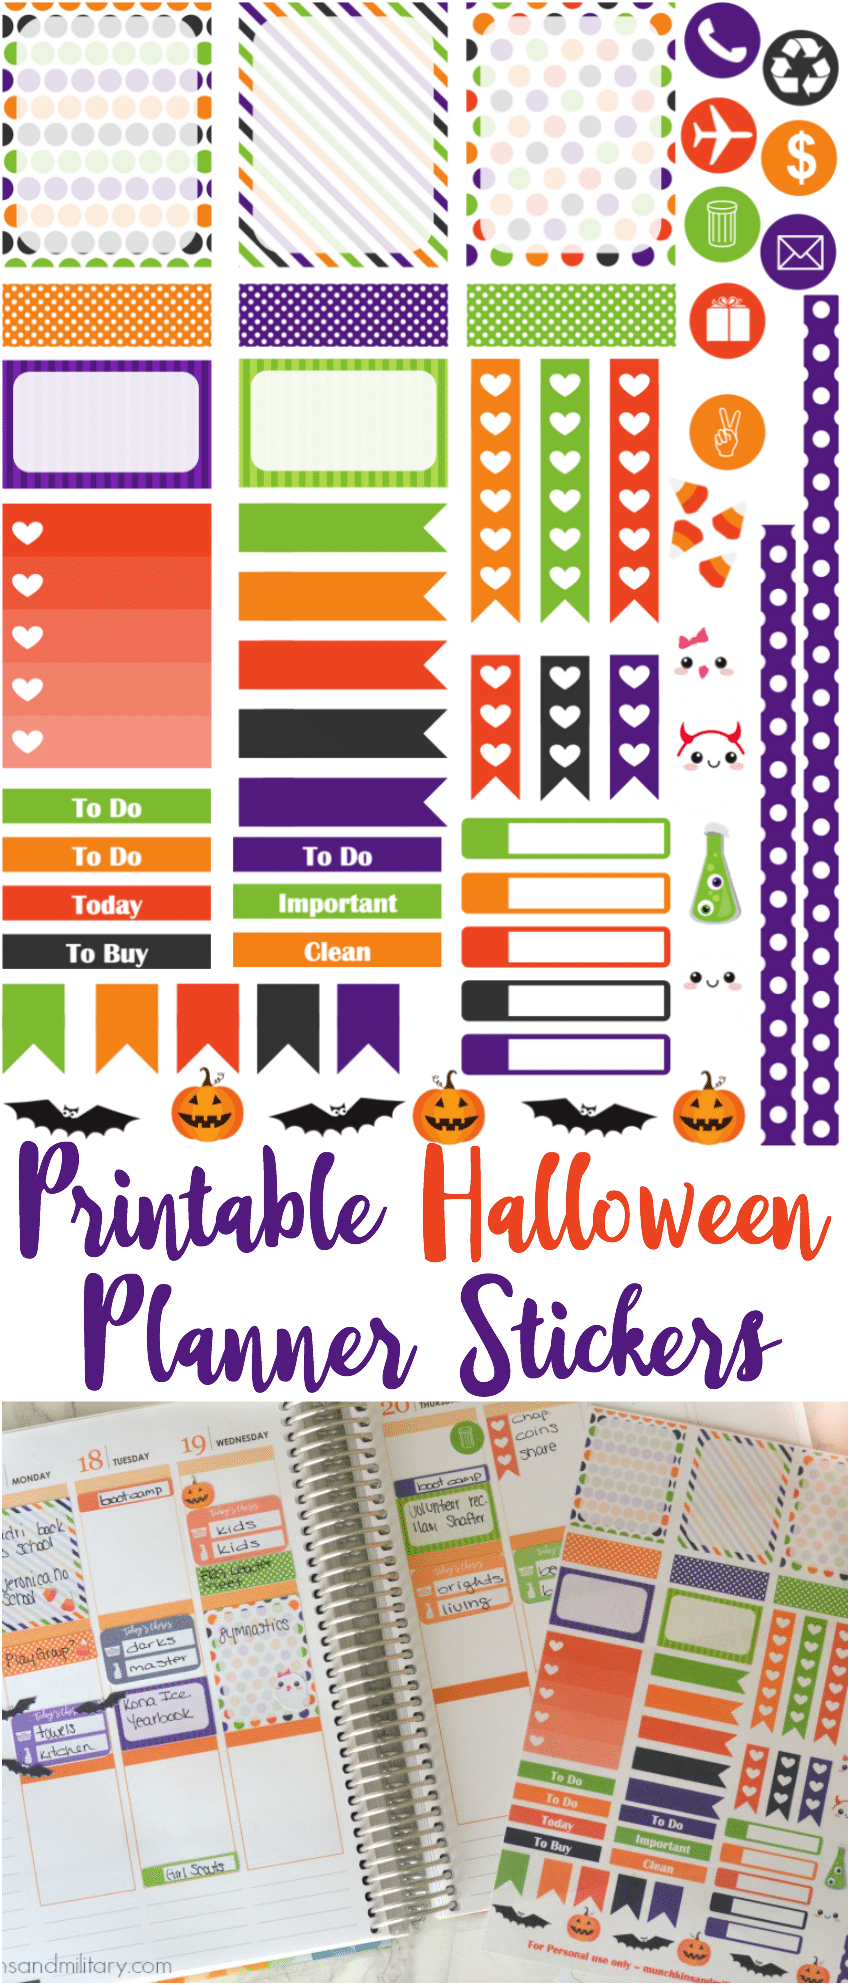 FREE printable Halloween Life PLanner Stickers - munchkinsandmilitary.com